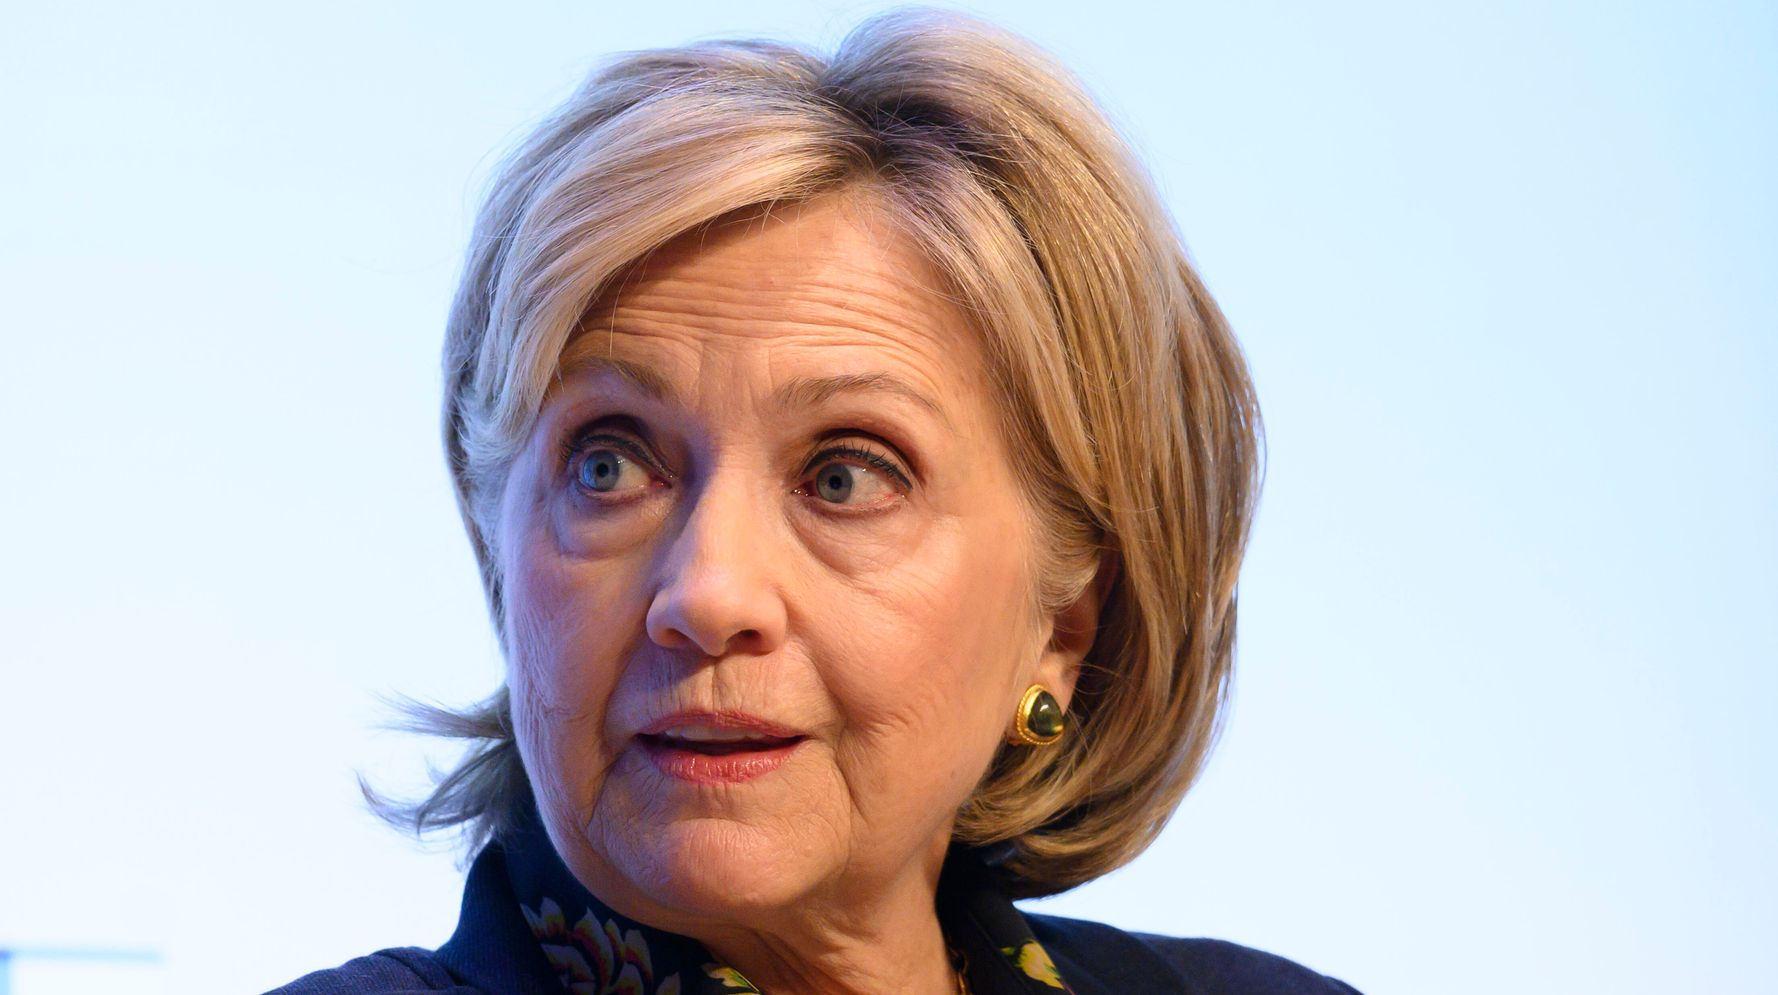 Hillary Clinton cover image